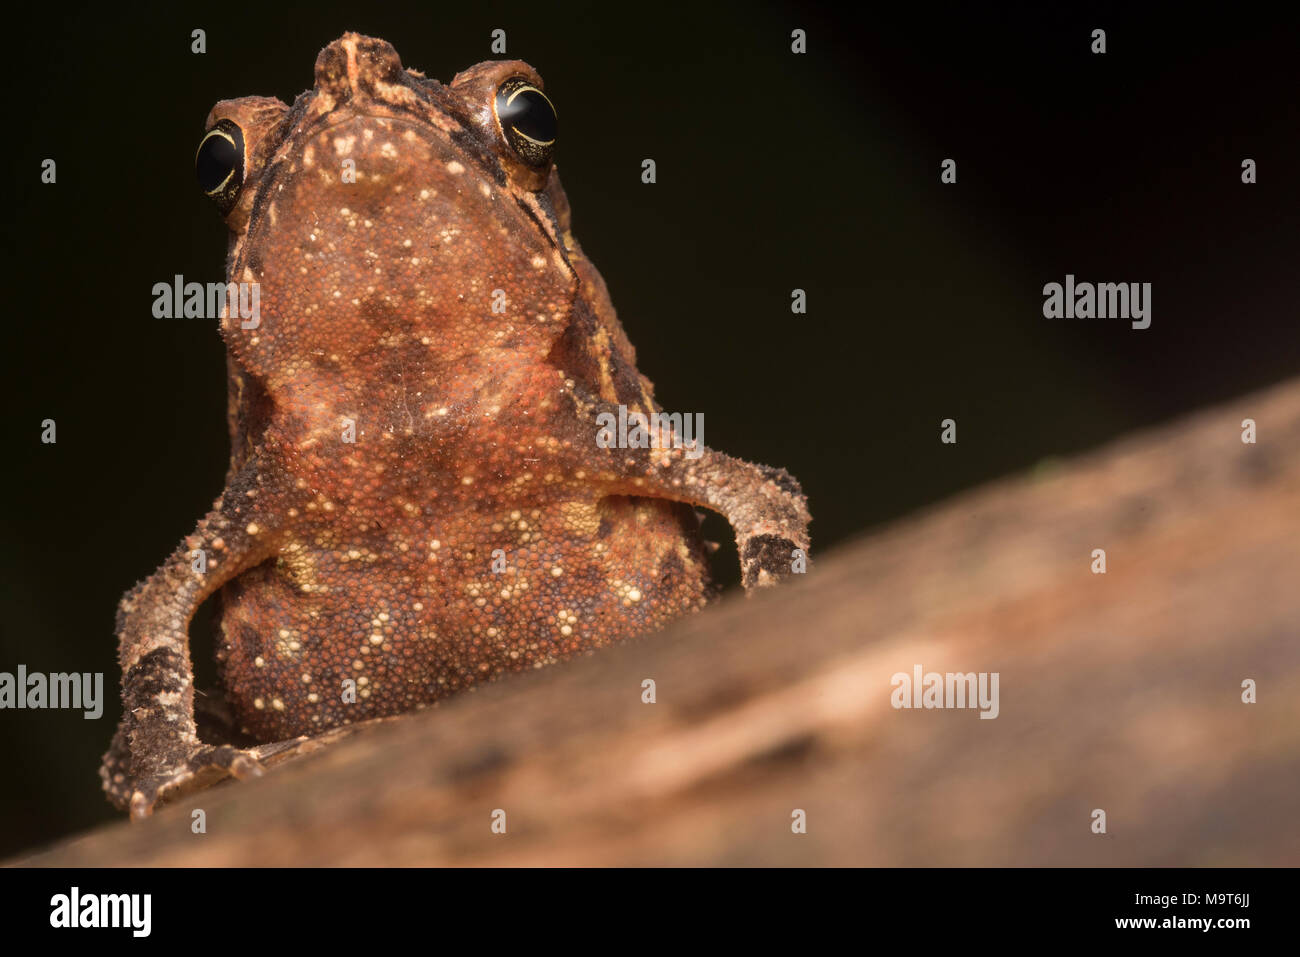 A portrait of the toad taken from ground level as the toad sat tall. - Stock Image